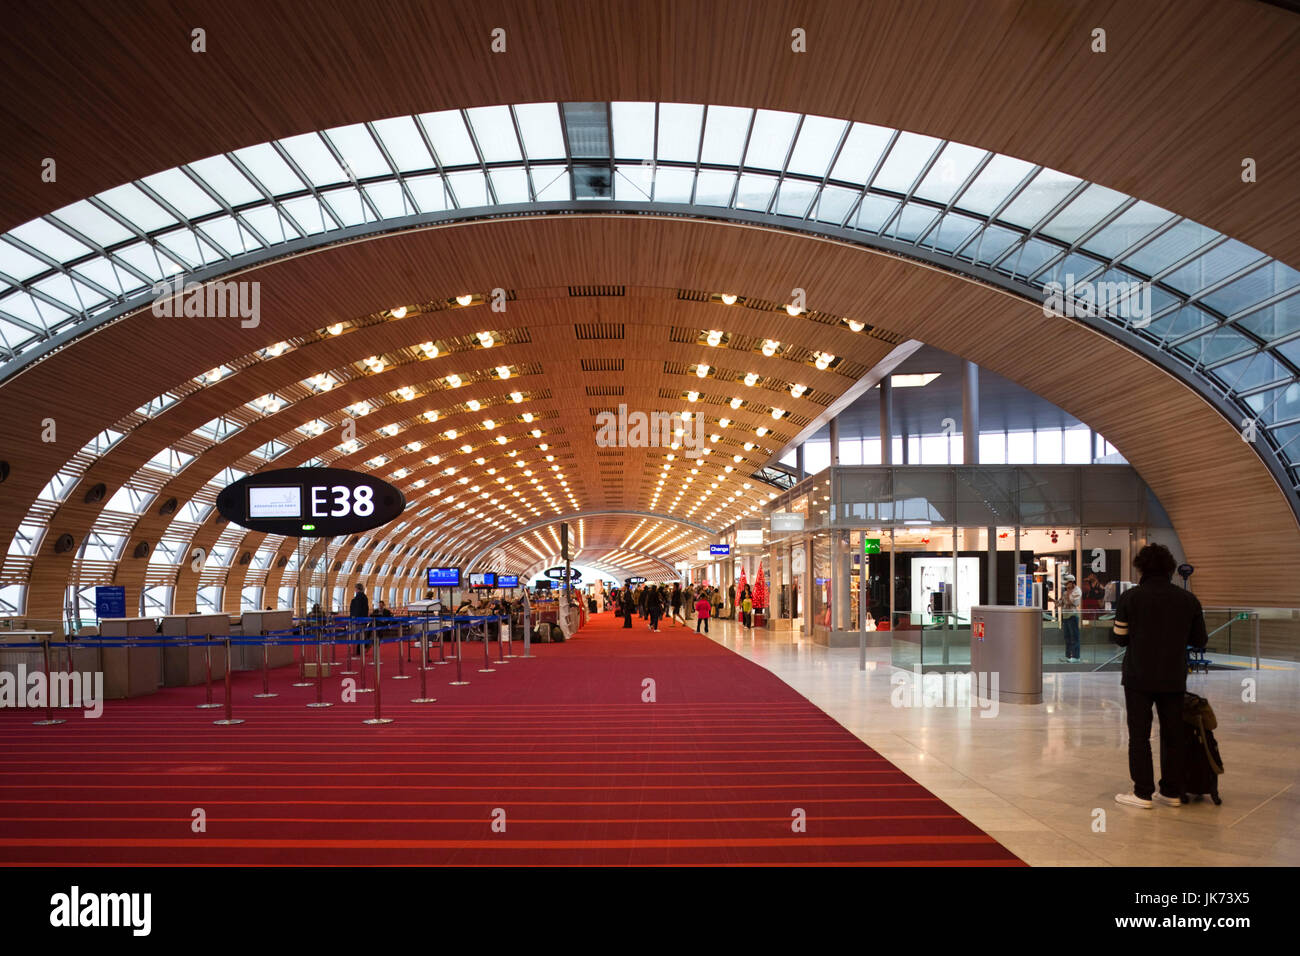 France, Paris, Aeroport Charles De Gaulle airport, Aerogare 2-Terminal E, international departure area Stock Photo